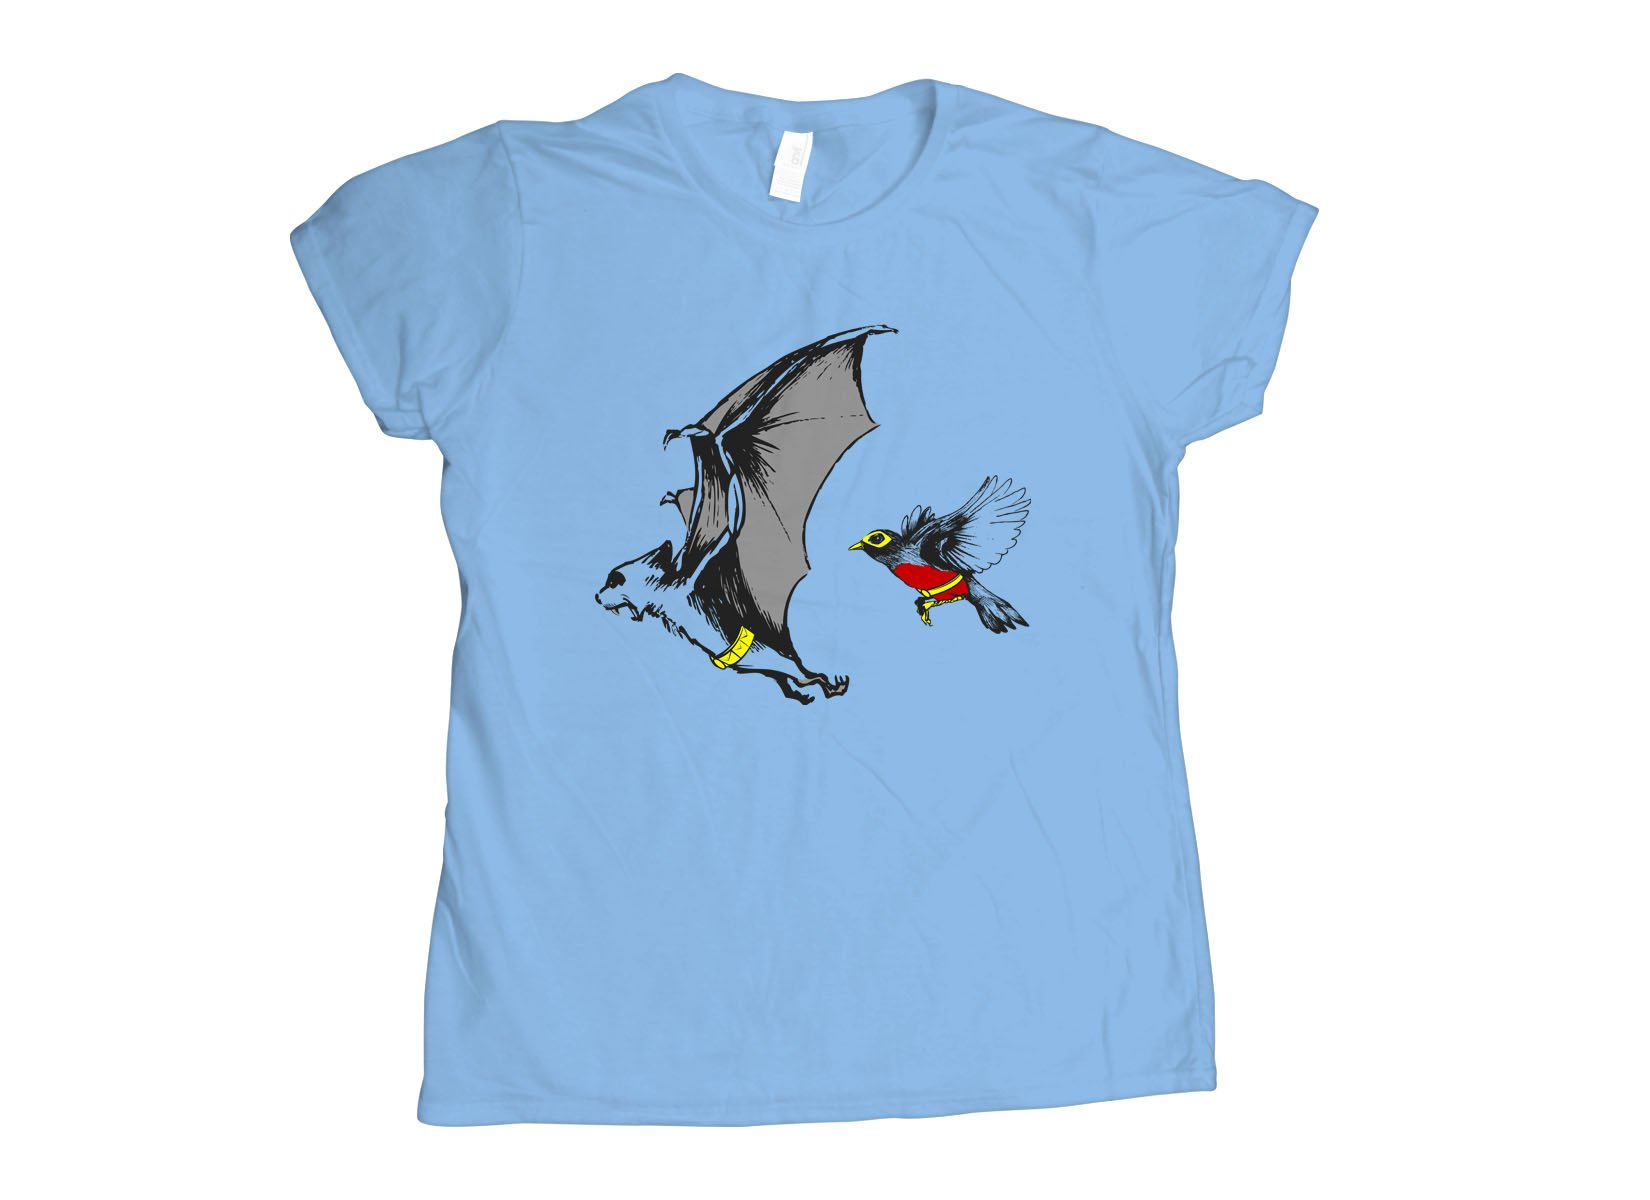 Bat And Robin on Womens T-Shirt